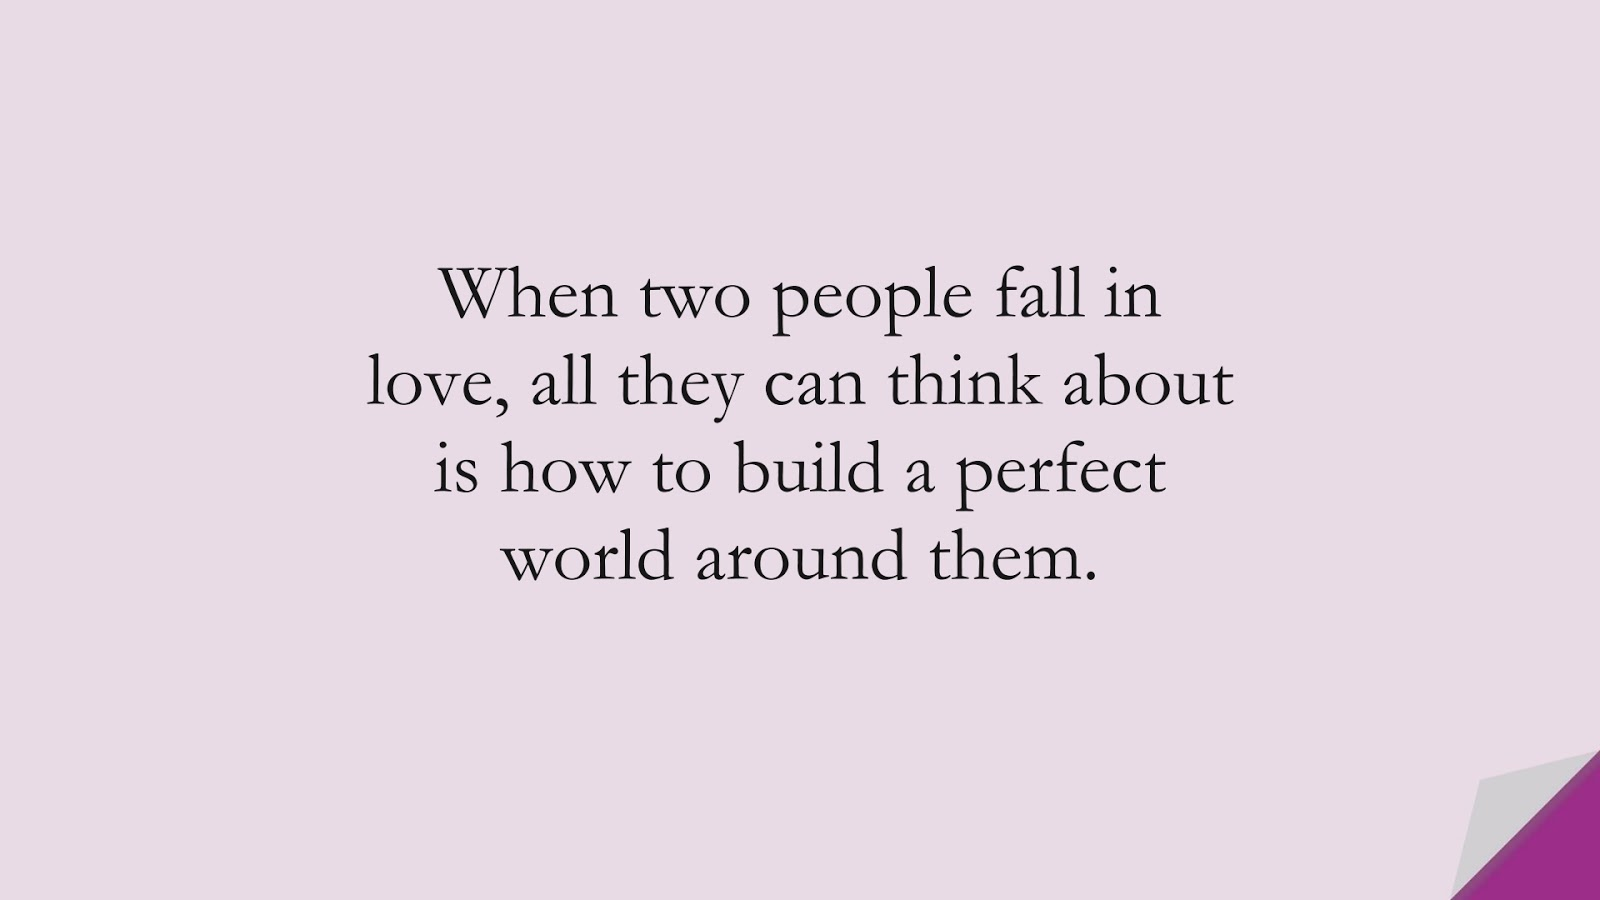 When two people fall in love, all they can think about is how to build a perfect world around them.FALSE